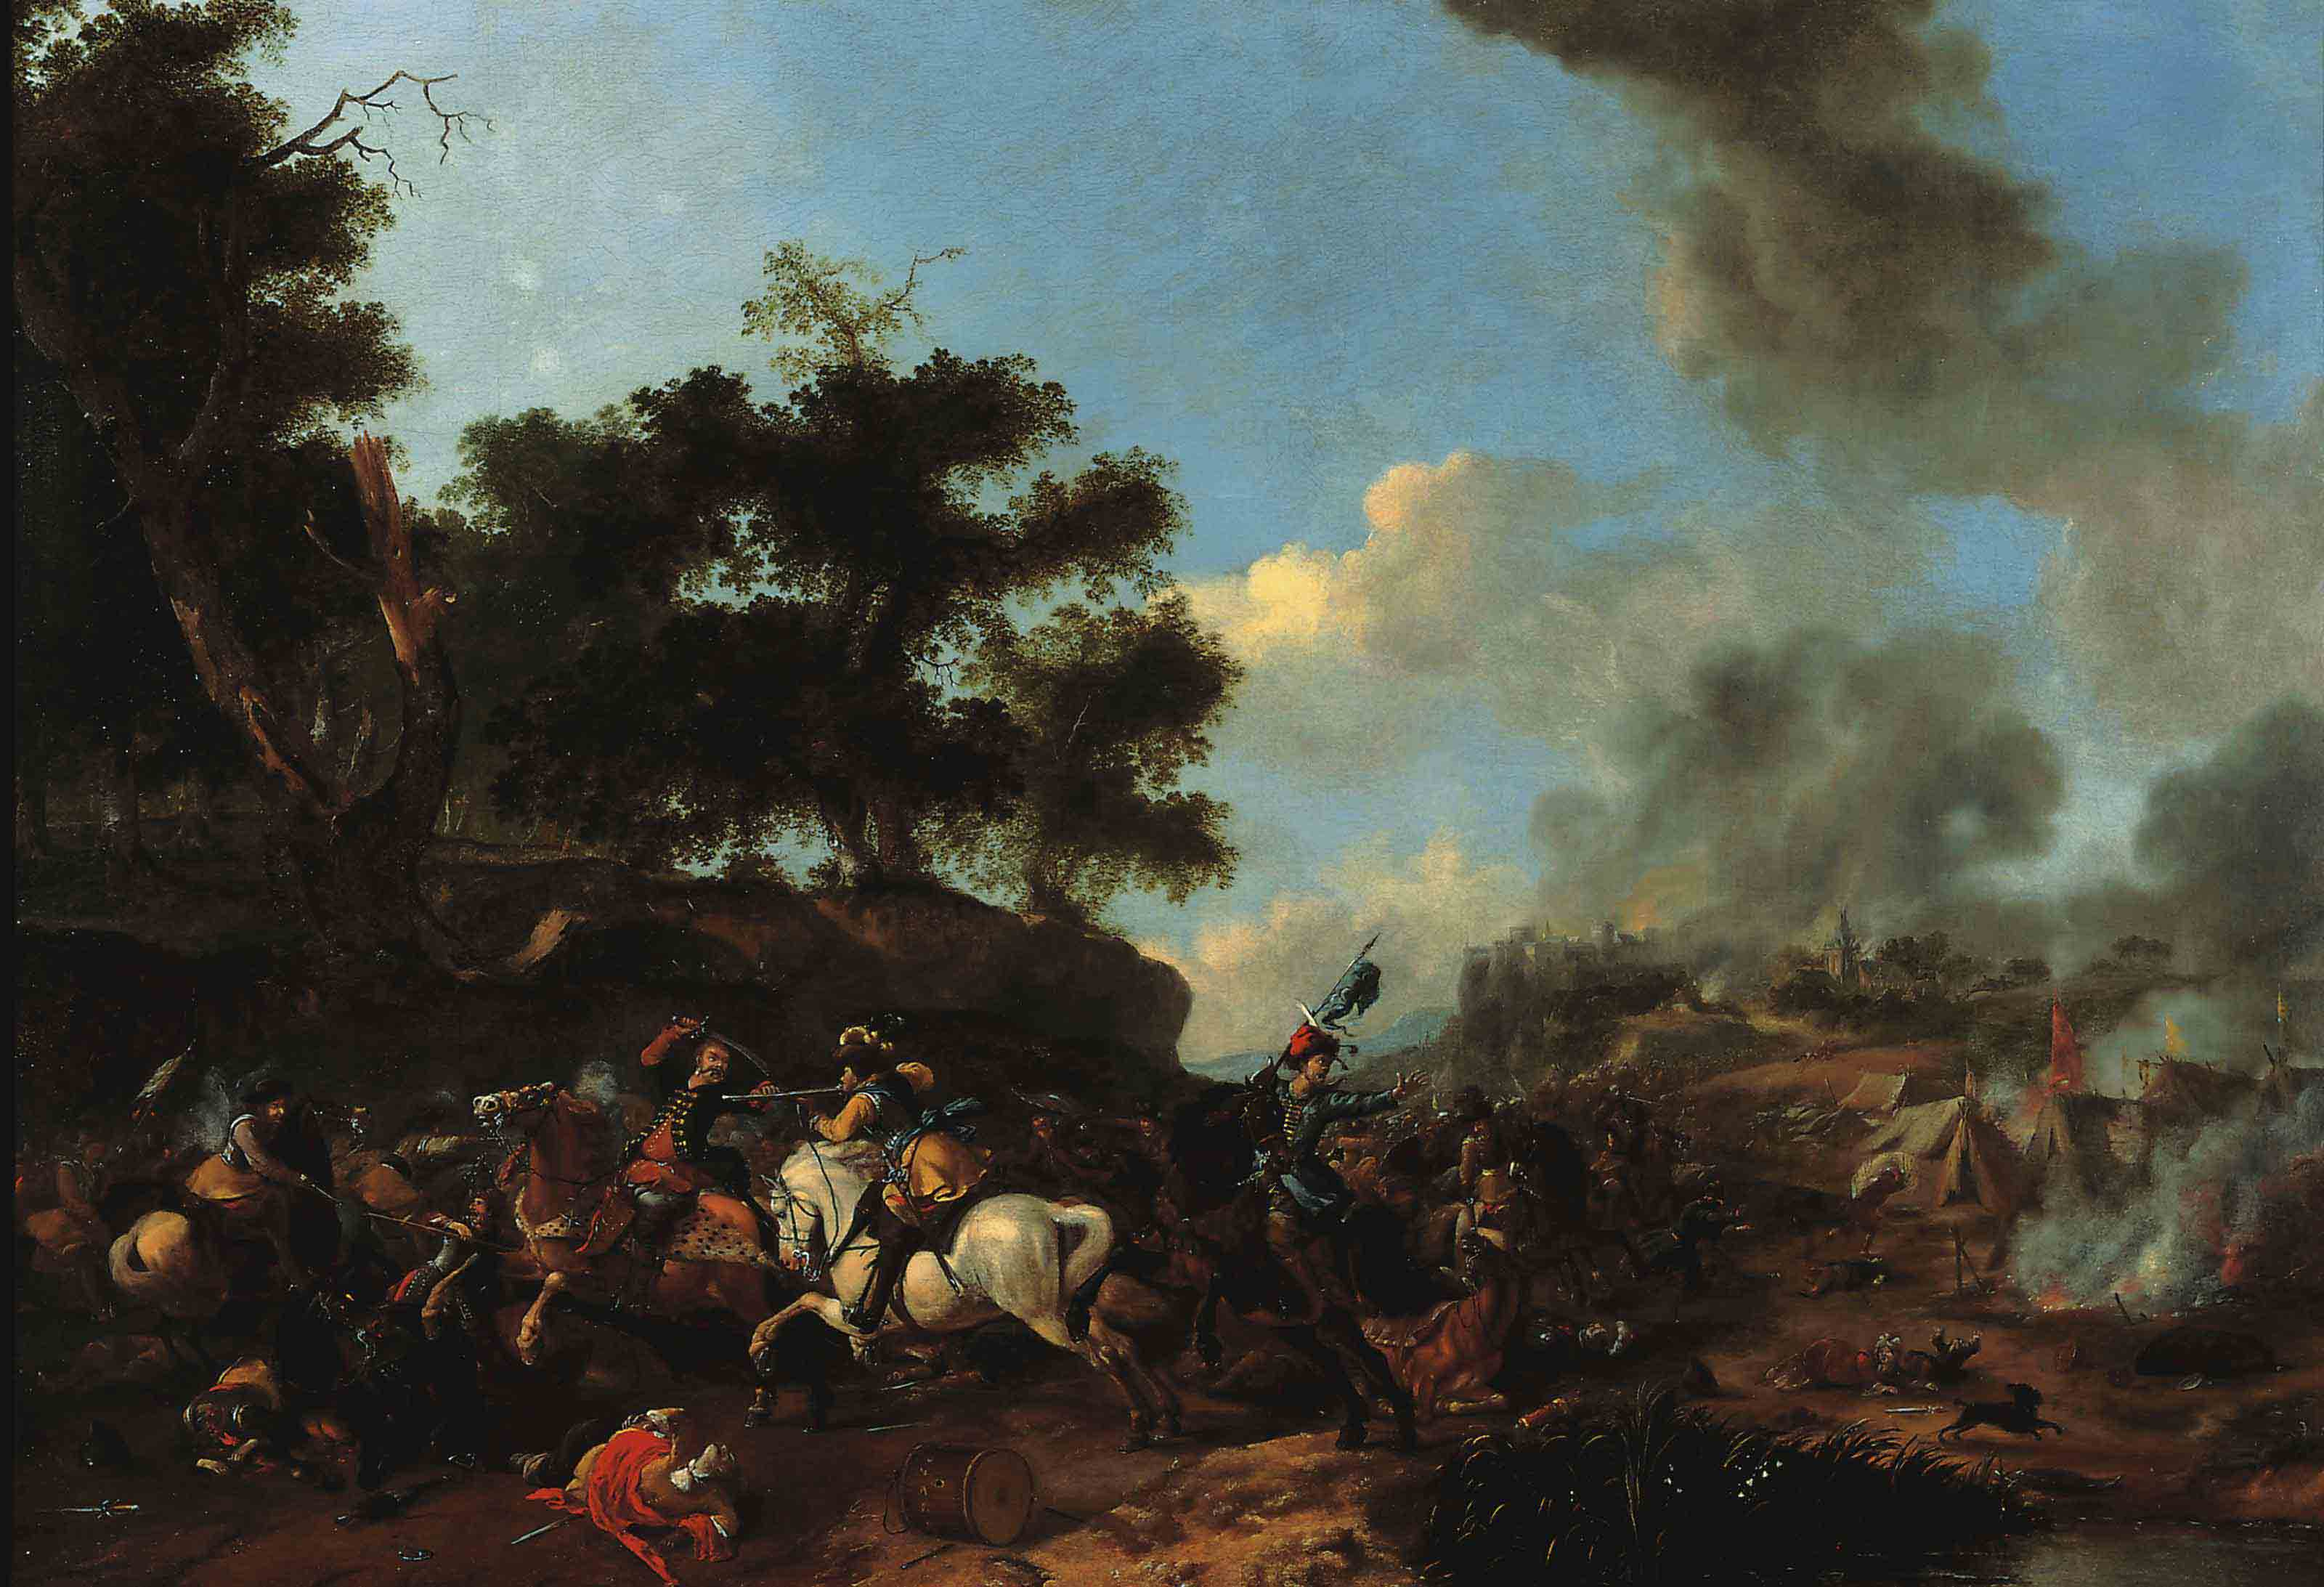 A skirmish with Polish Cavalry near an encampment